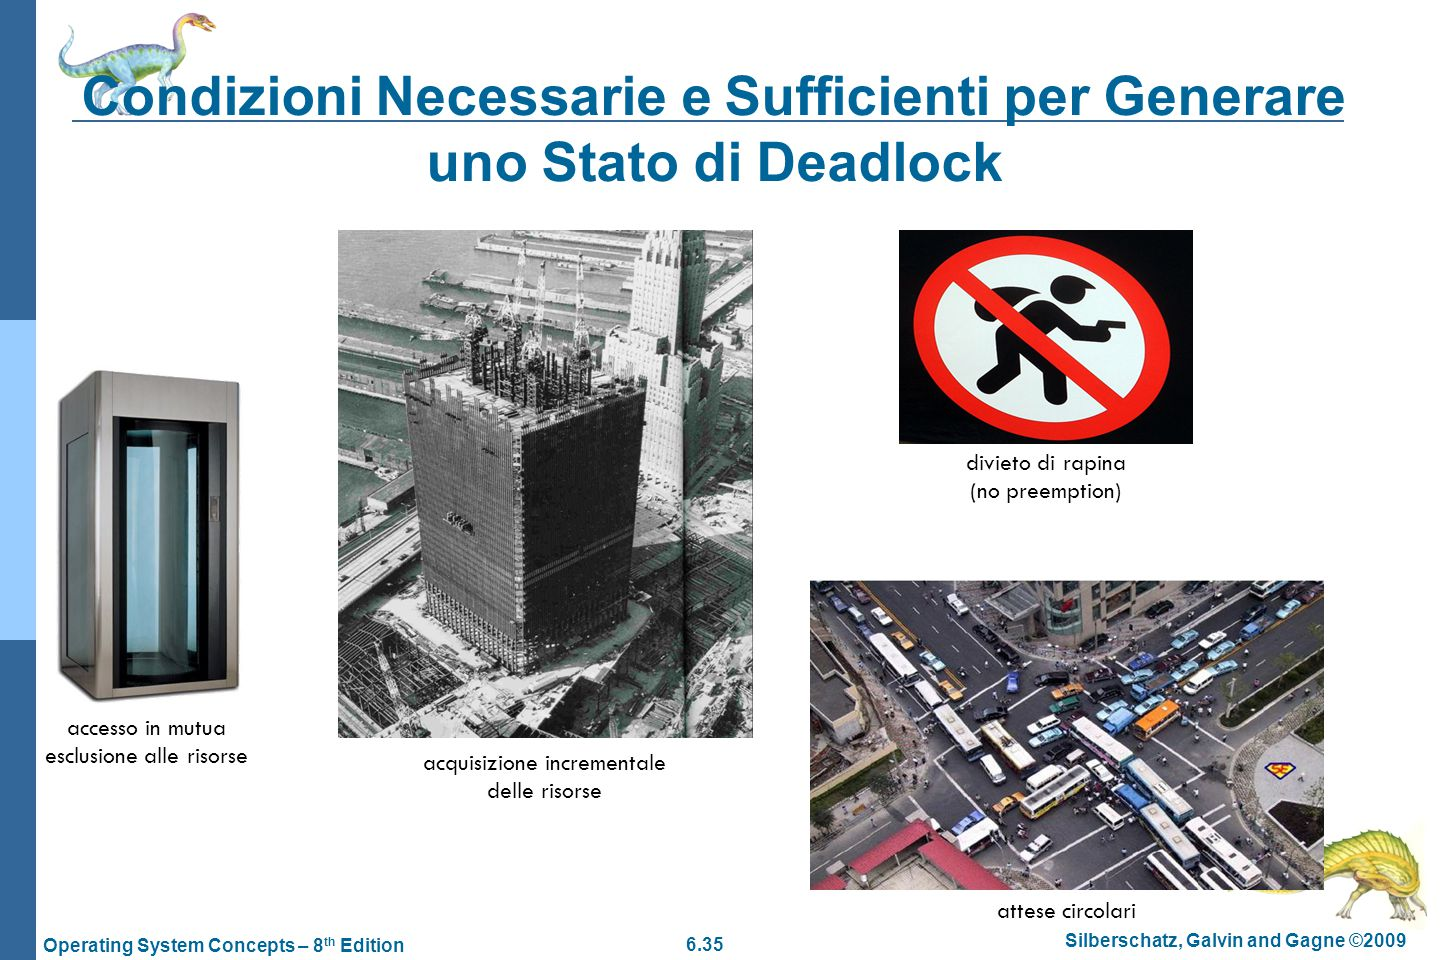 6.35 Silberschatz, Galvin and Gagne ©2009 Operating System Concepts – 8 th Edition Condizioni Necessarie e Sufficienti per Generare uno Stato di Deadlock accesso in mutua esclusione alle risorse acquisizione incrementale delle risorse divieto di rapina (no preemption) attese circolari